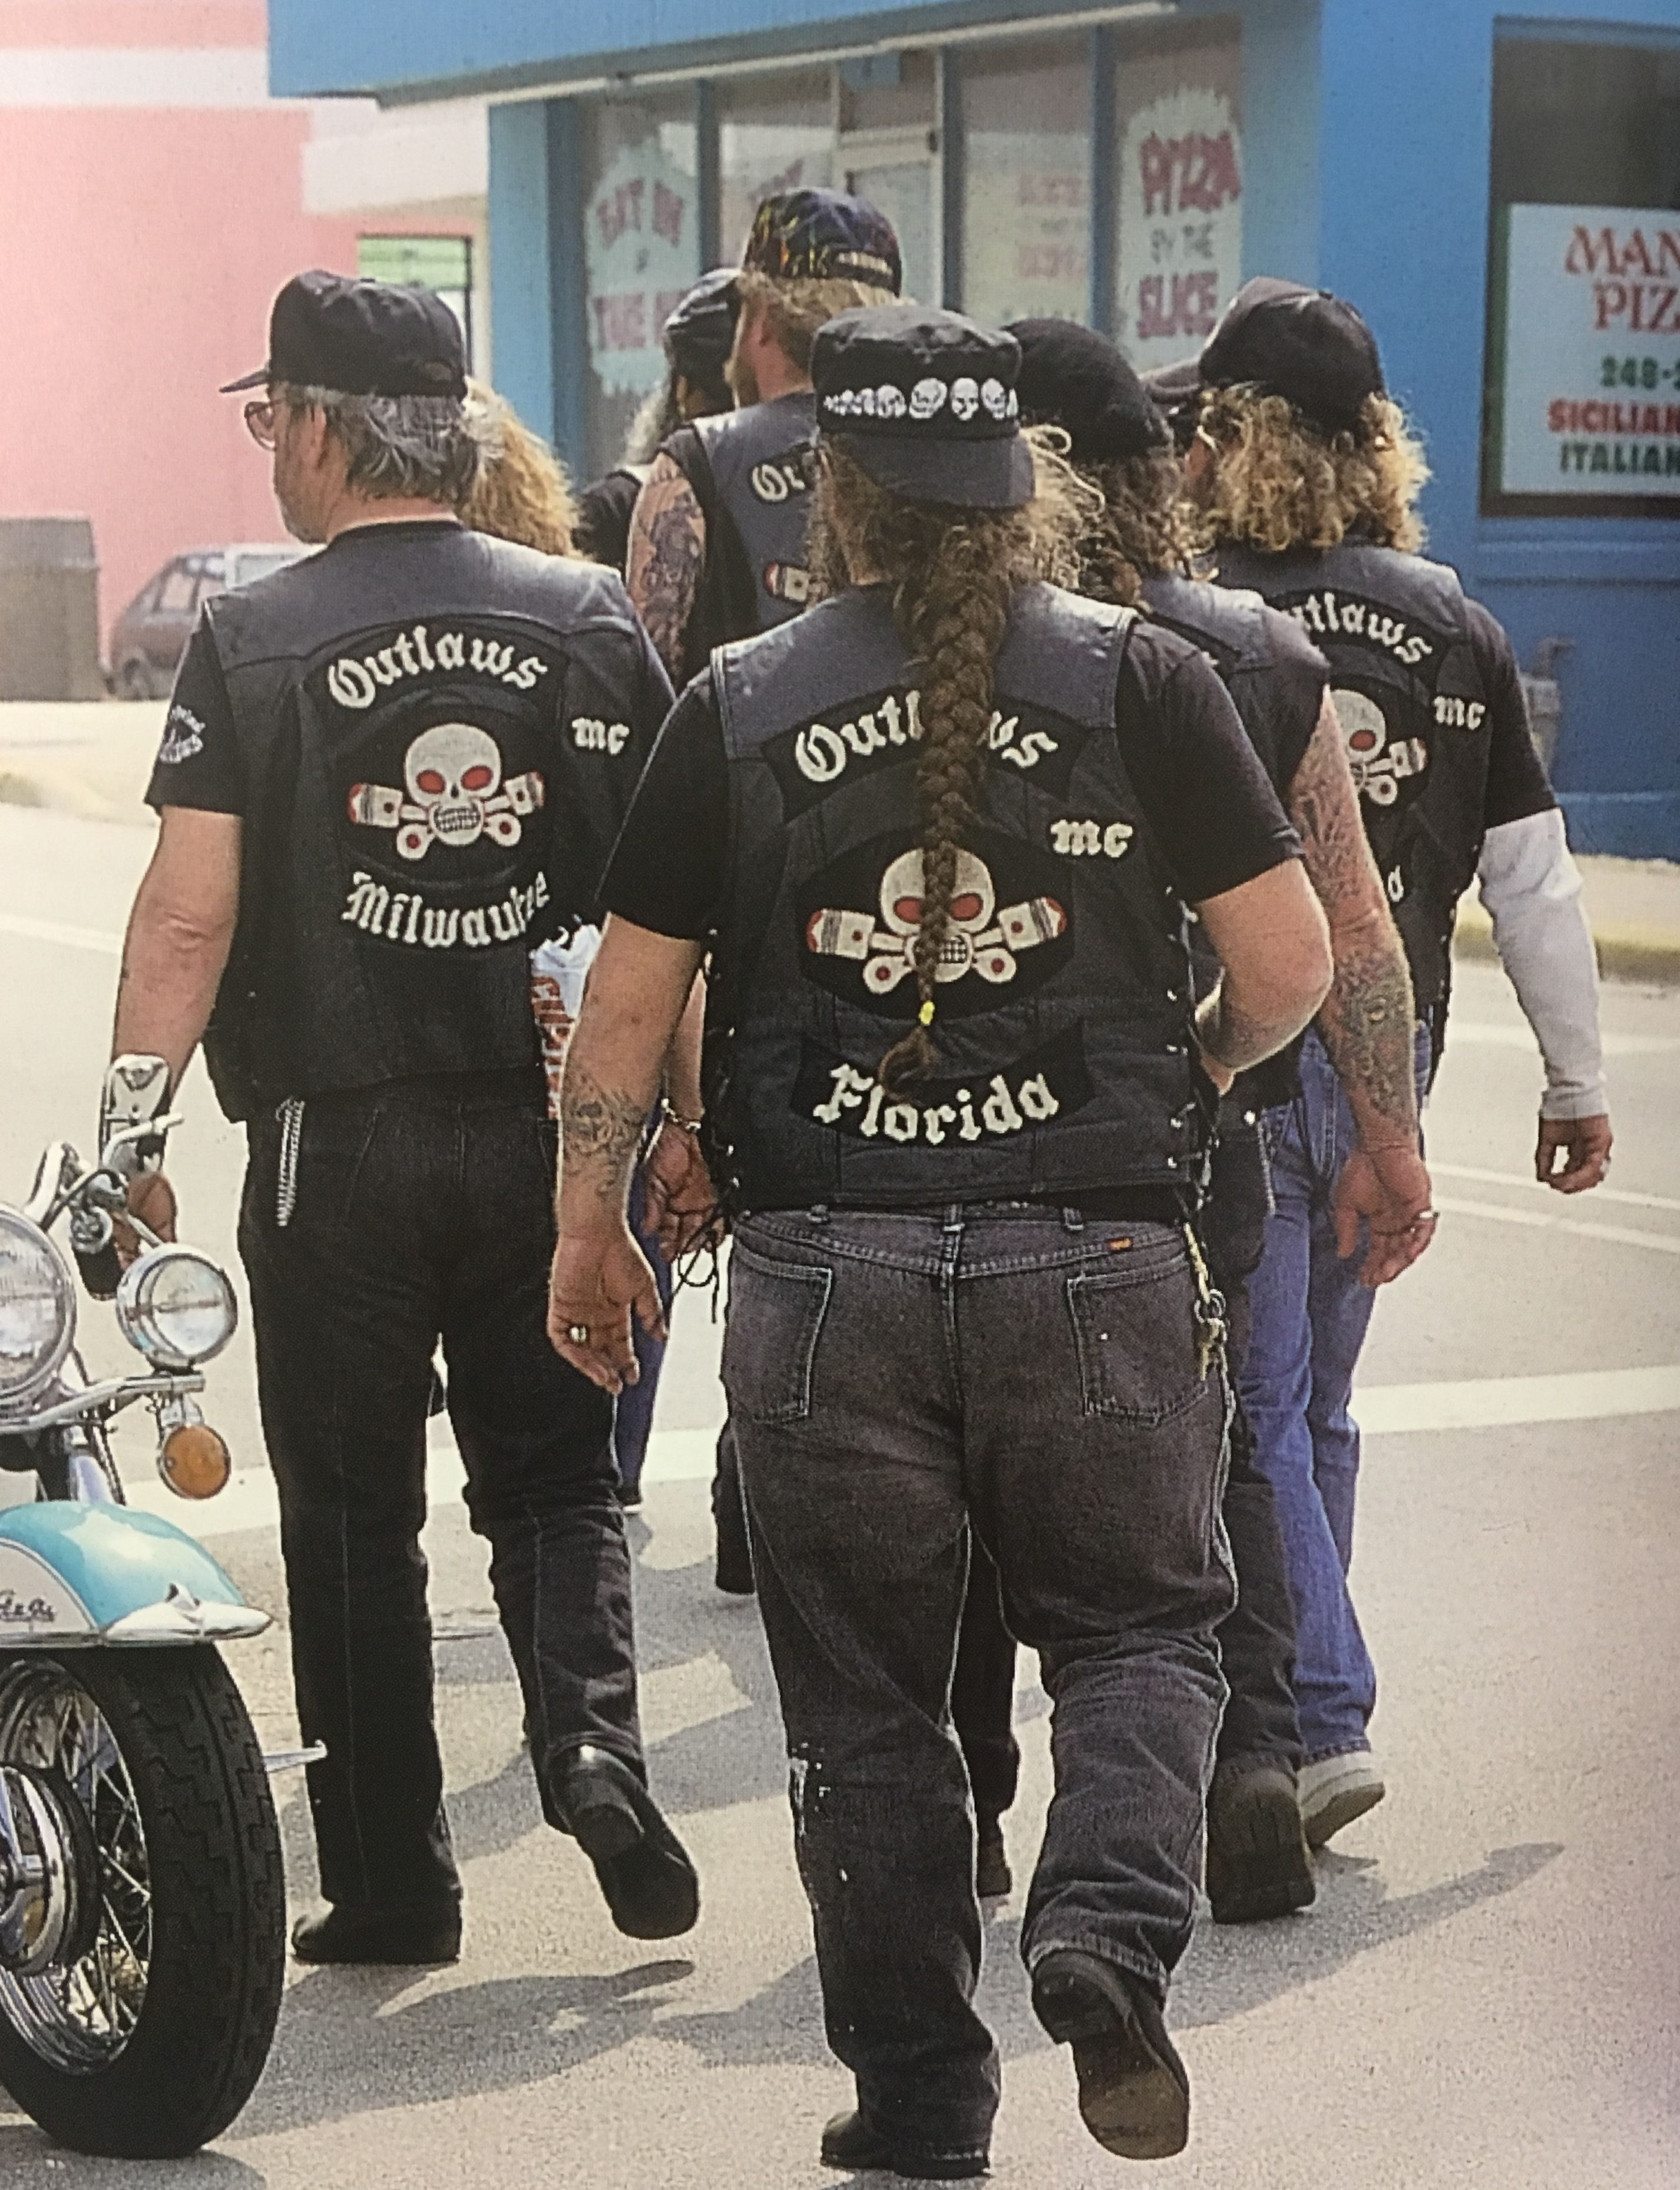 Outlaws MC | Outlaw Bikers | Outlaws motorcycle club, Biker clubs